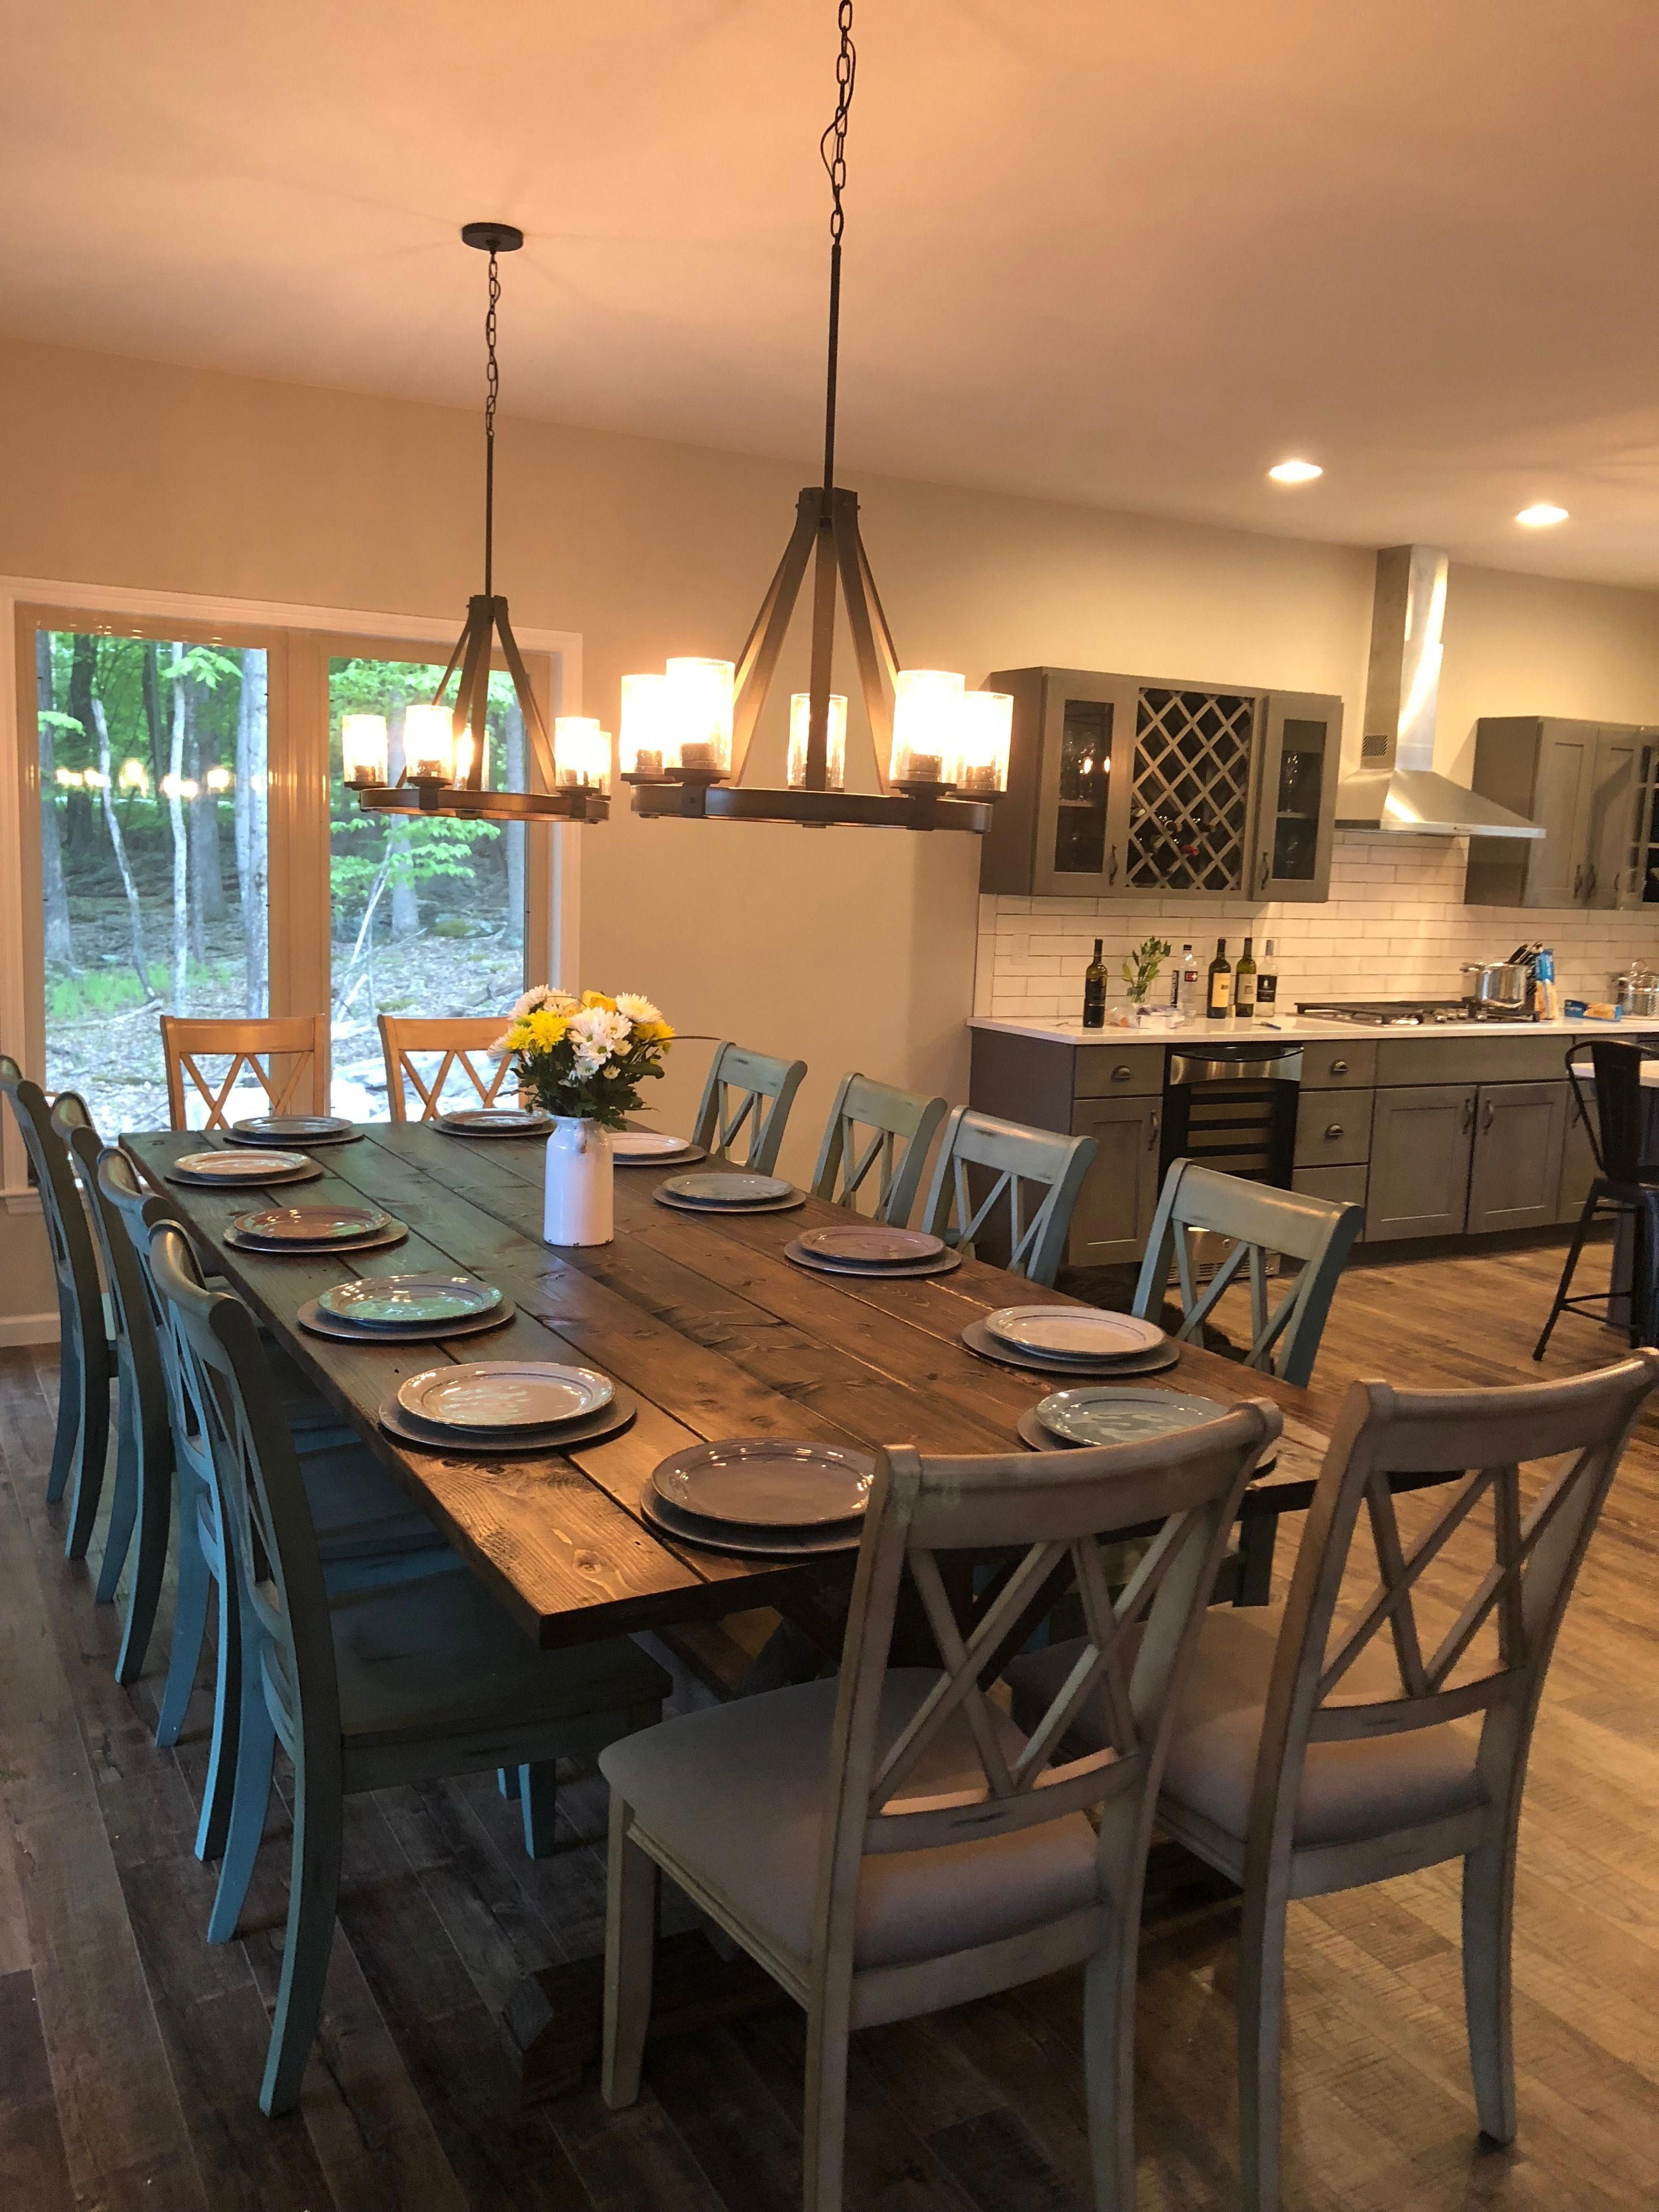 Two Light Fixtures Over Dining Room Table Dining Room Dining Table Rustic Large Farmhouse Table Farmhouse Dining Room Table